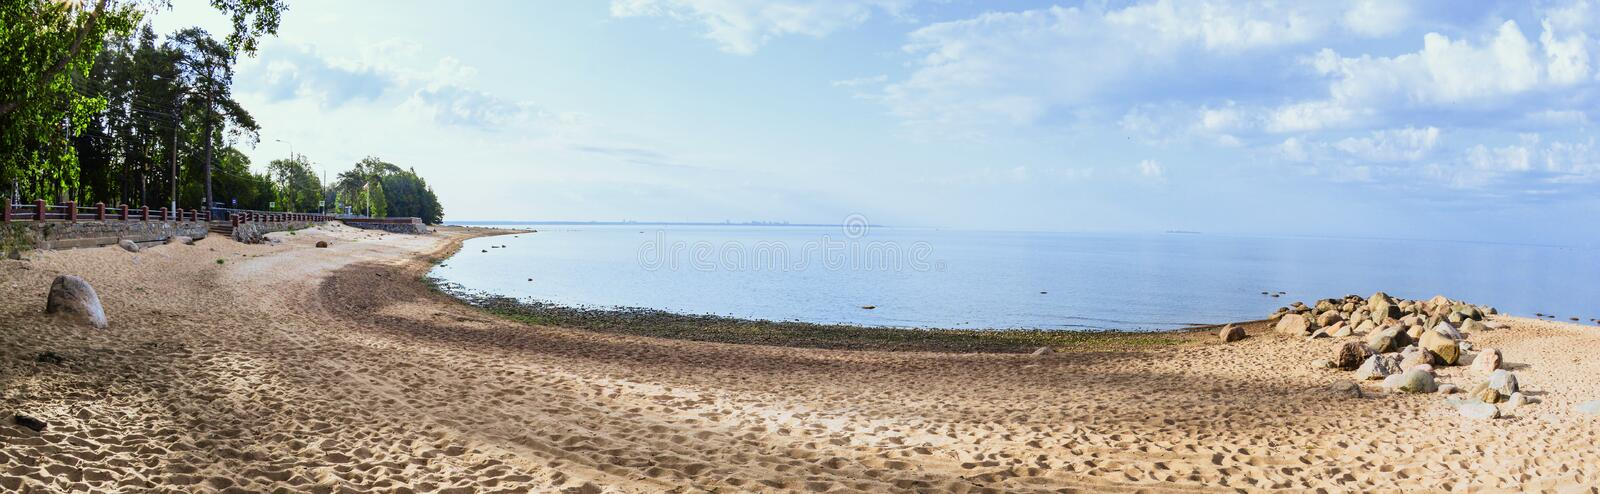 Bay shore on an early summer morning. Peace and quiet on a deserted beach stock photography